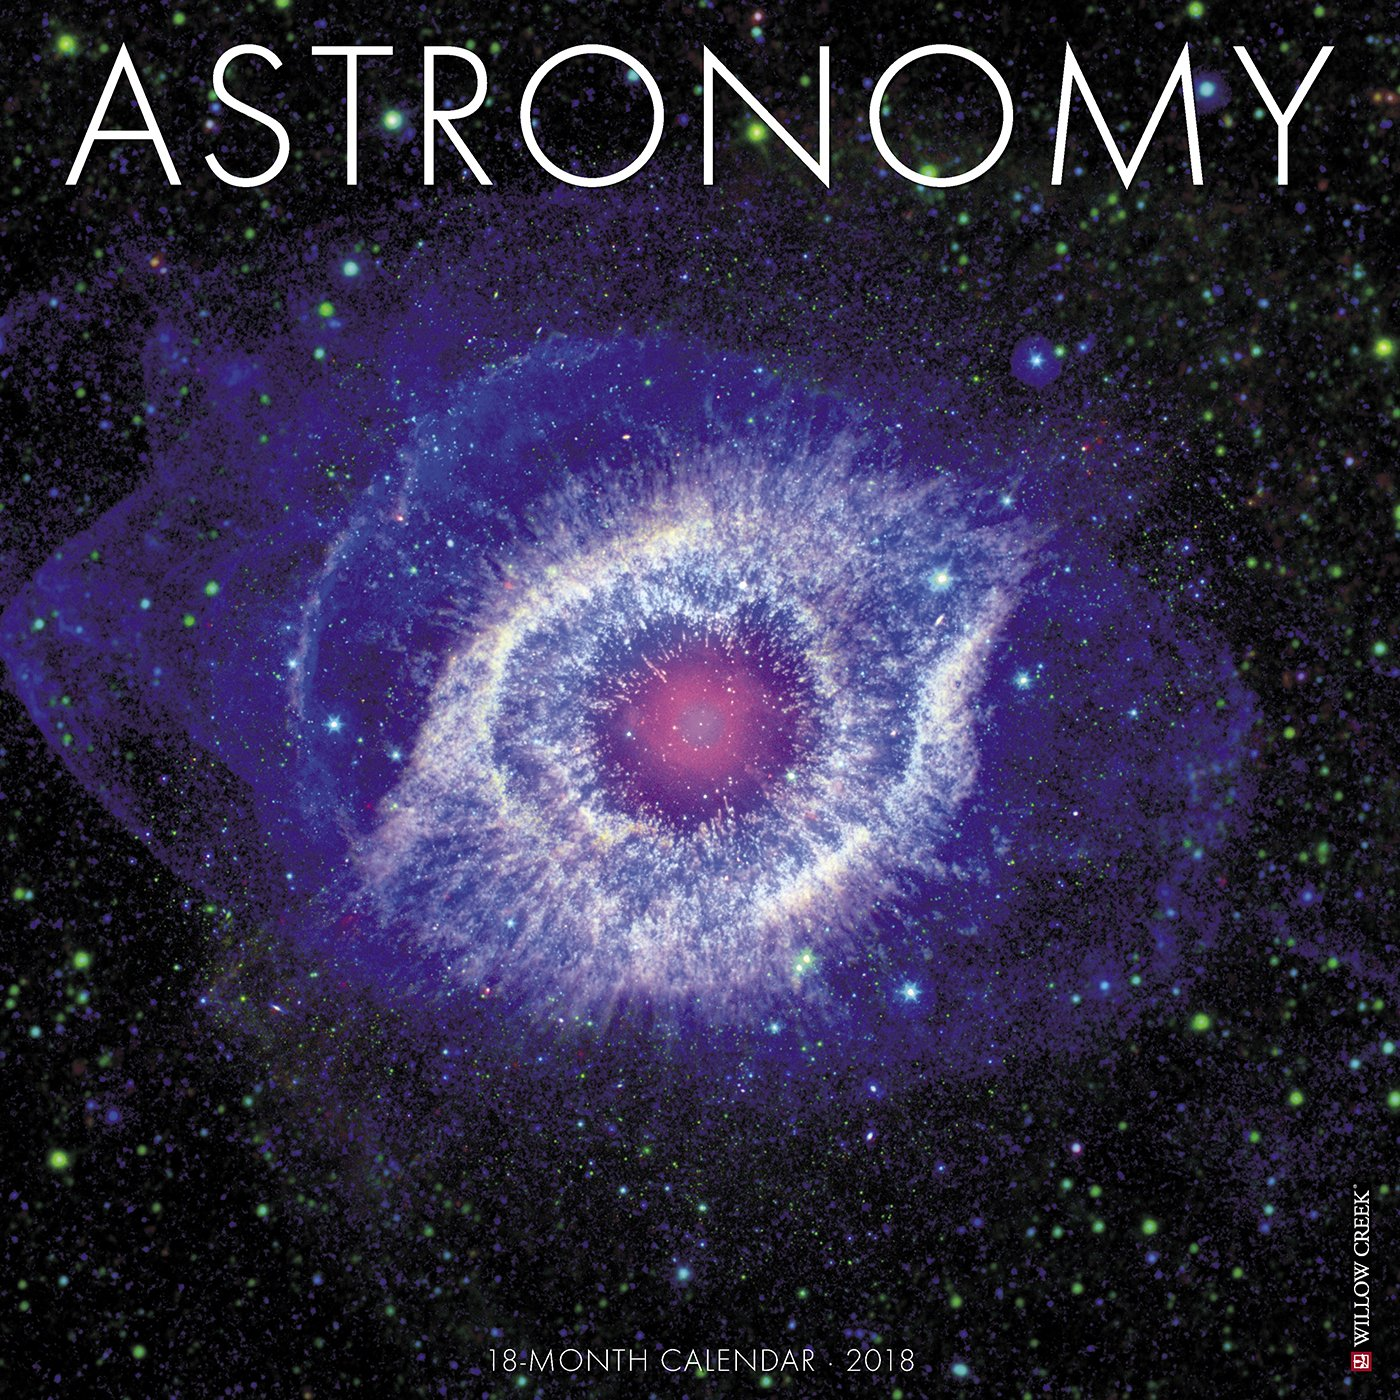 free shipping Astronomy 2020 Wall Calendar by Willow Creek Press